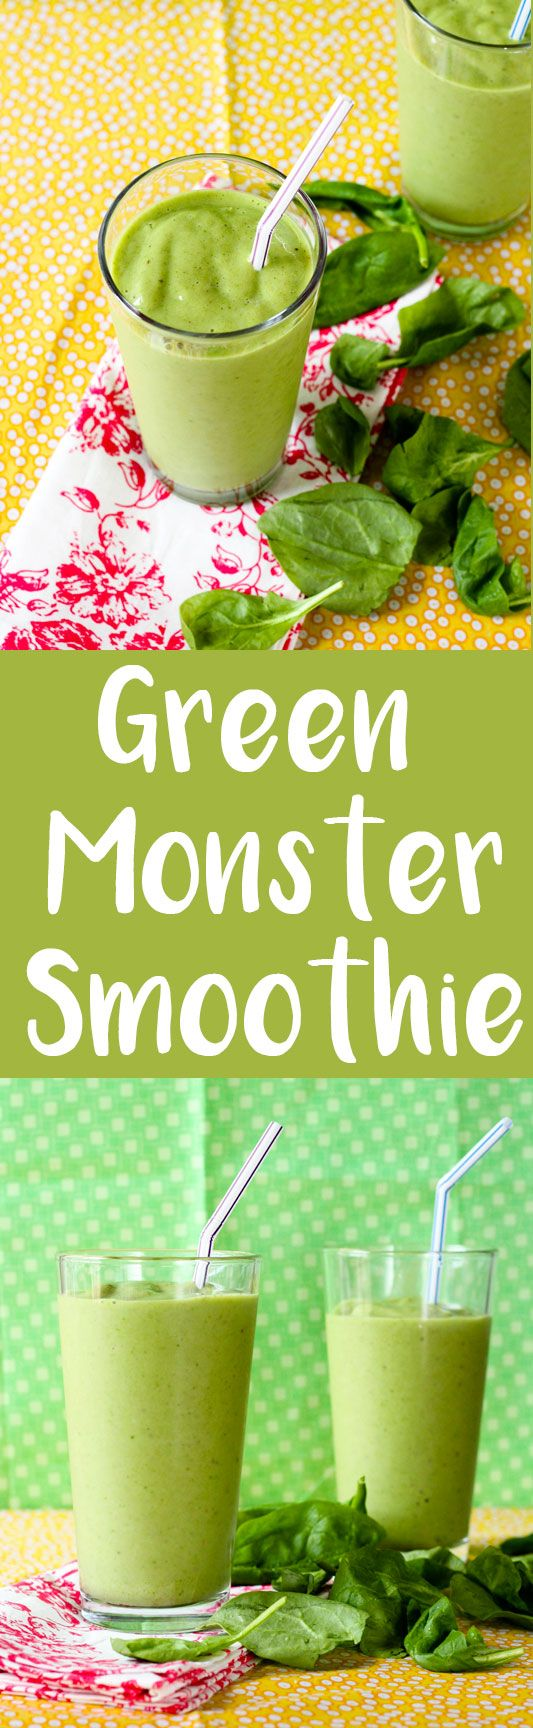 This green monster smoothie is packed with delicious fruit and you won't even be able to tell there is a healthy green leaf in here!